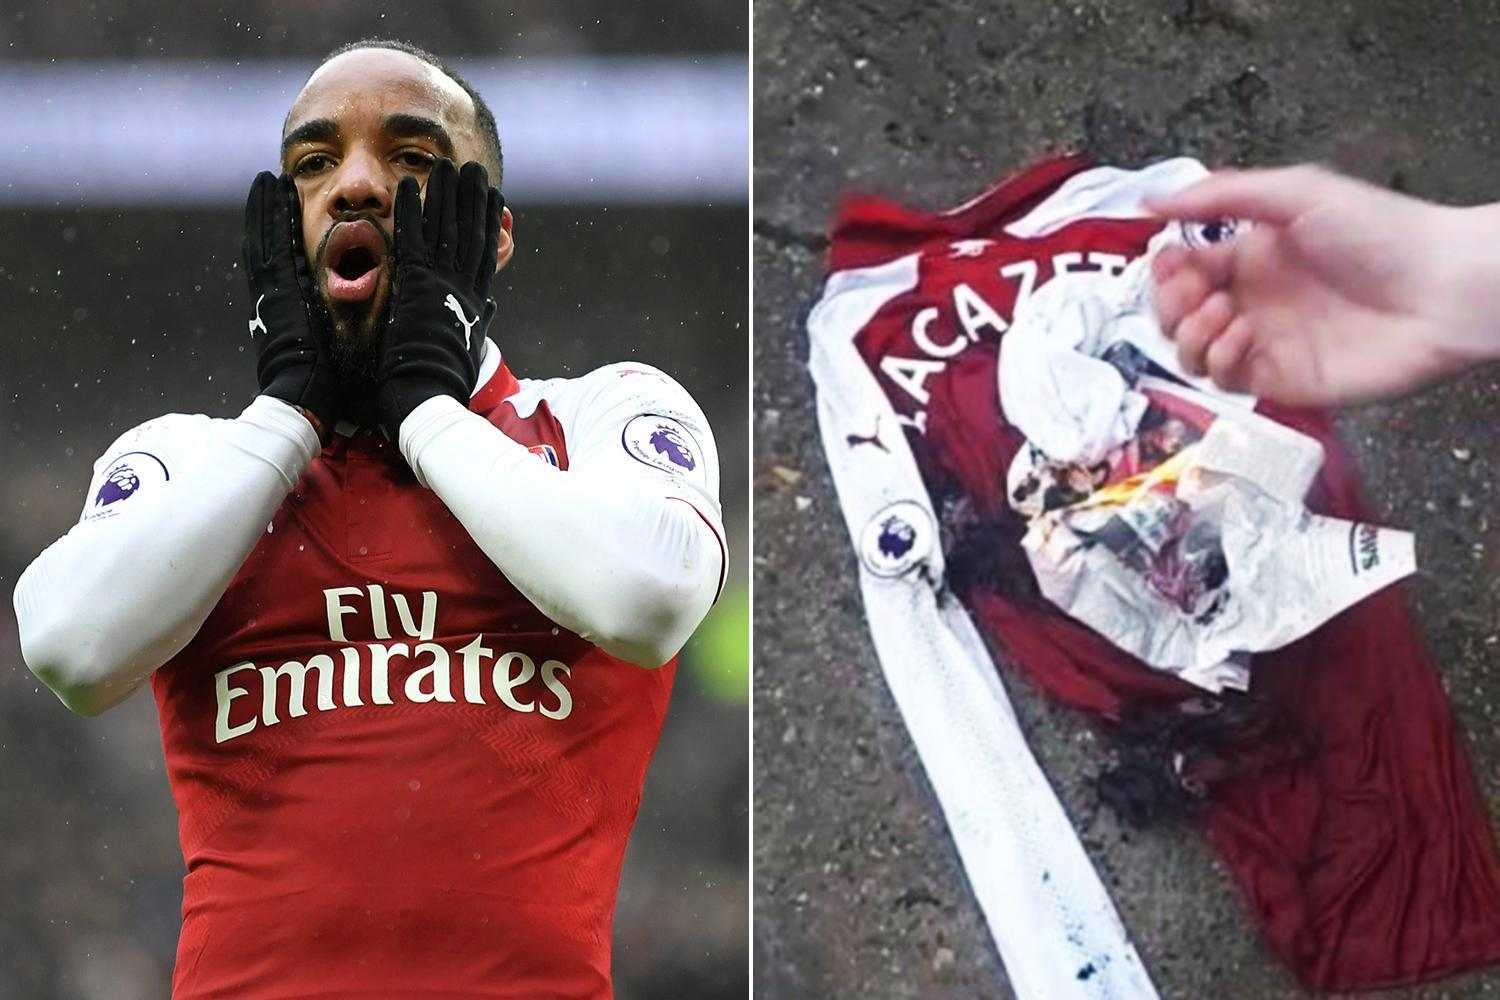 Arsenal star Alexandre Lacazette set for six weeks out after having knee surgery following nightmare Tottenham defeat